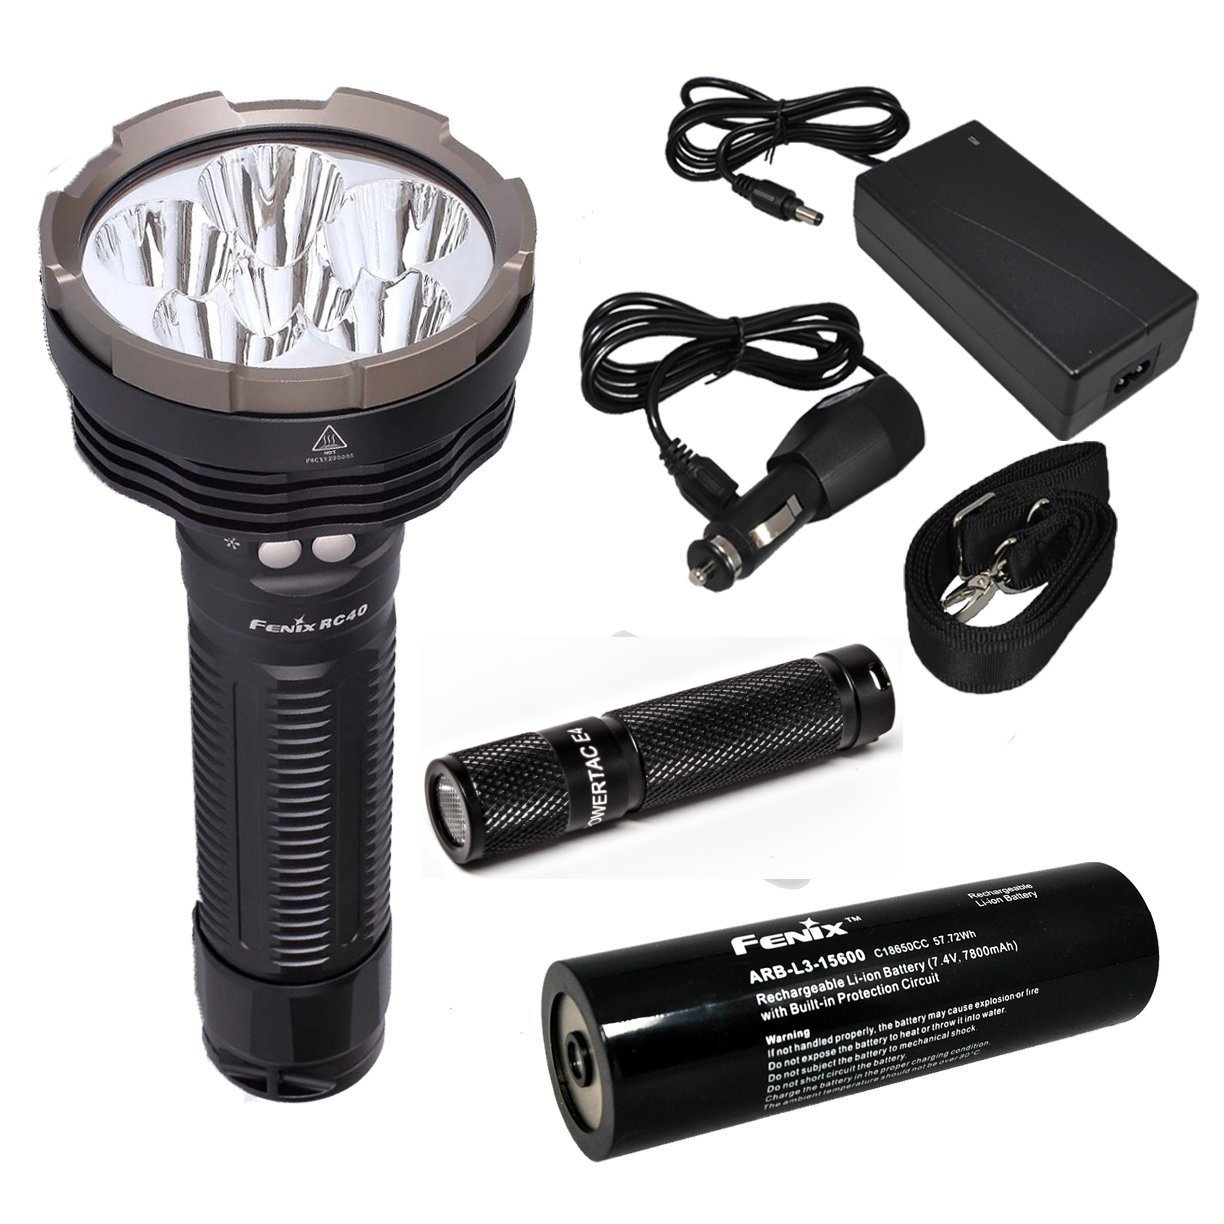 Fenix RC40 2016 Rechargeable LED Flashlight 6000 Lumens with 7800mAh rechargeable battery, Home/Car charger and 30 Lumen AAA Keychain Light by Fenix